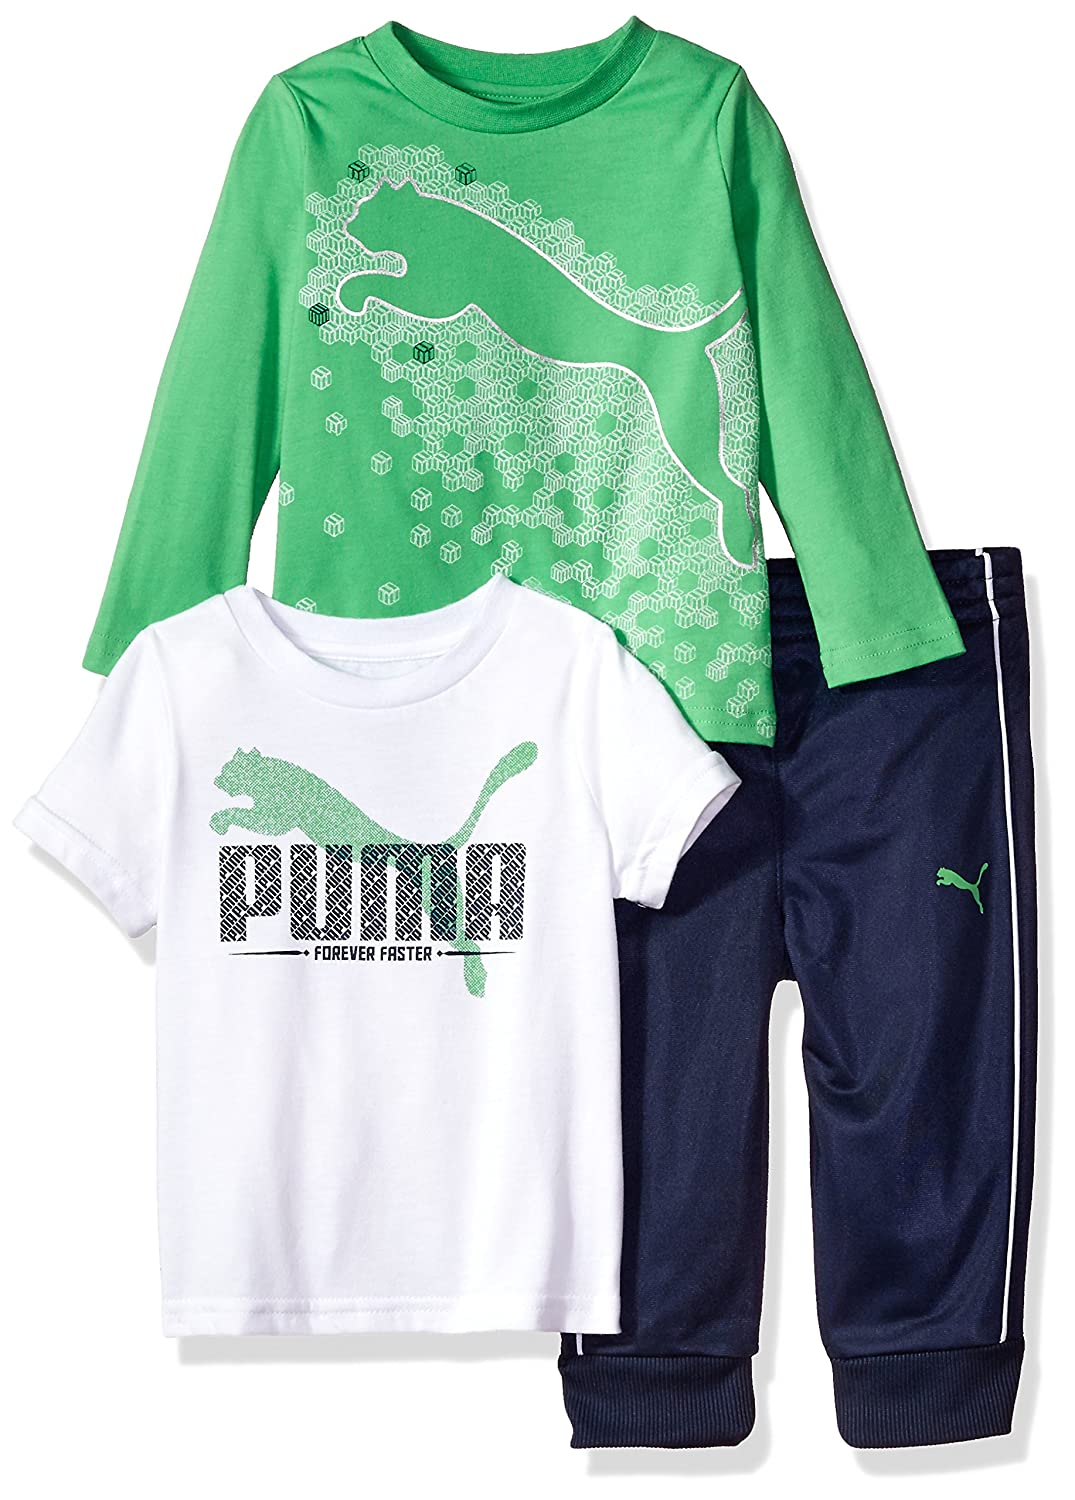 PUMA Boys Toddler Boys Boys' Three Piece T-Shirt and Pant Set Royal Blue 2T 41175326FAZ-P480